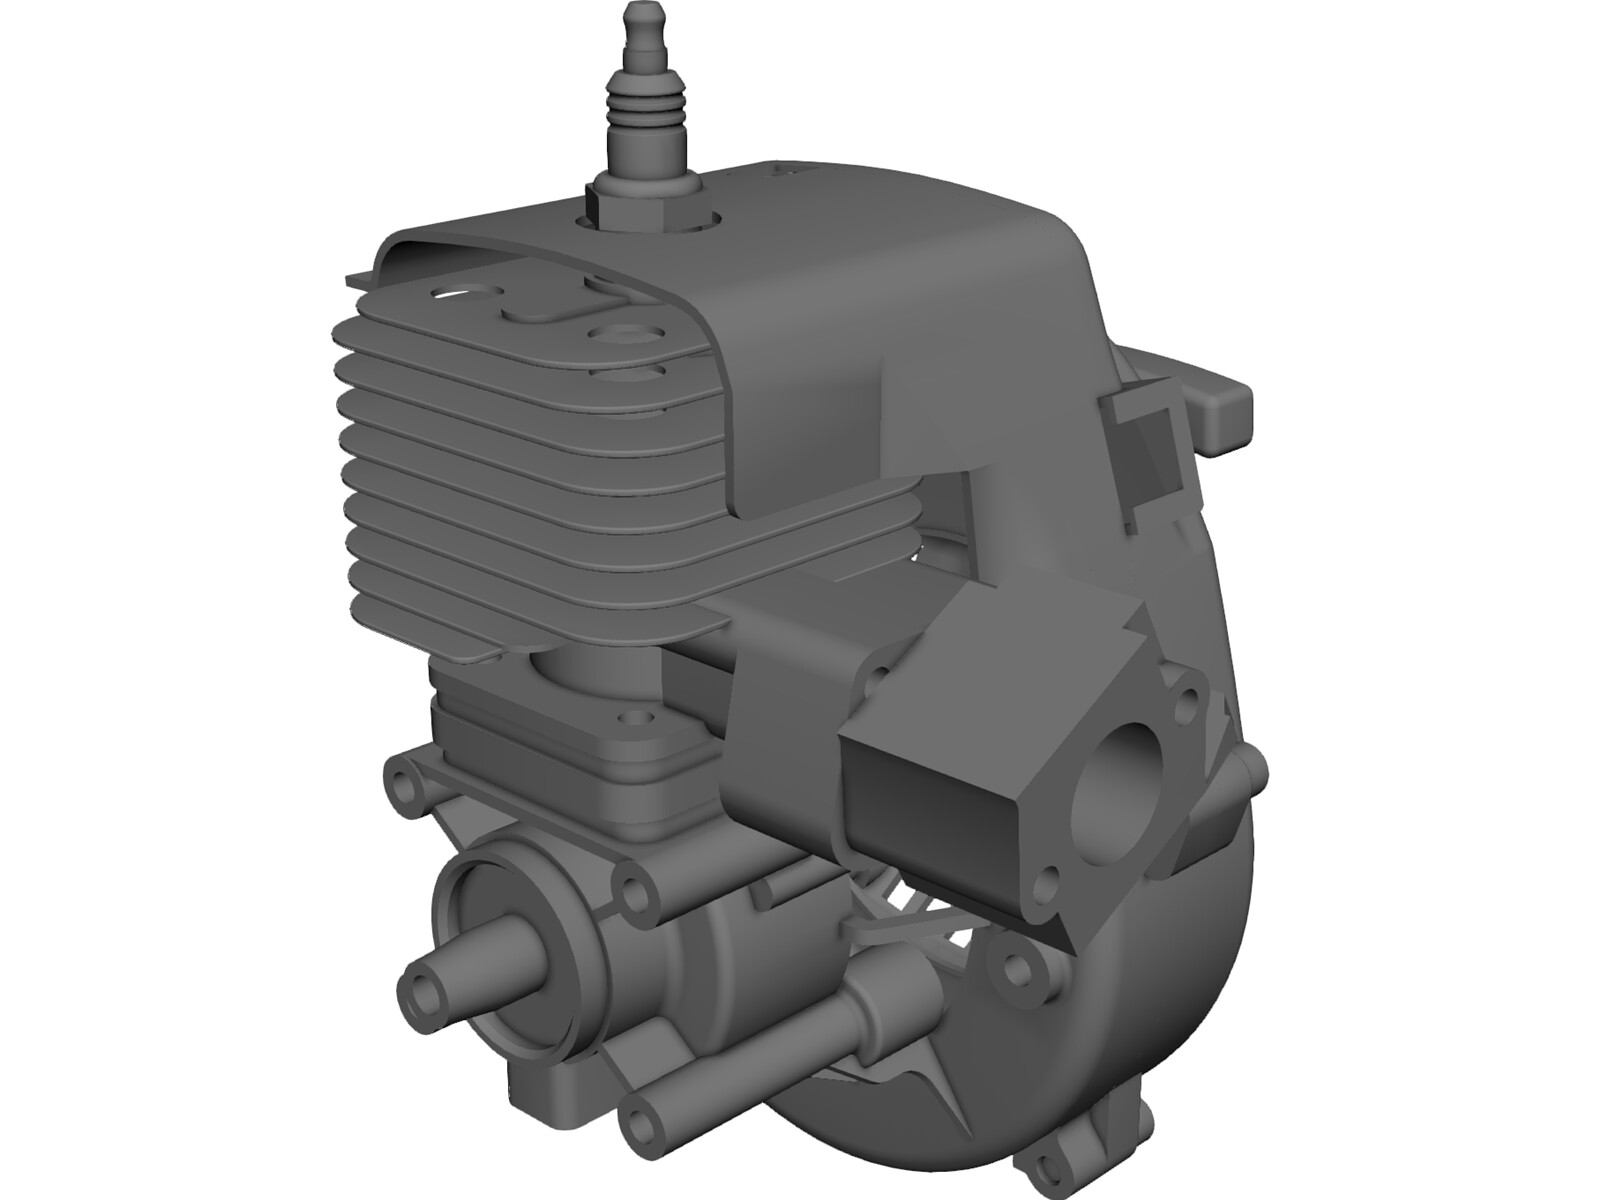 Zenoah G270 3D CAD Model